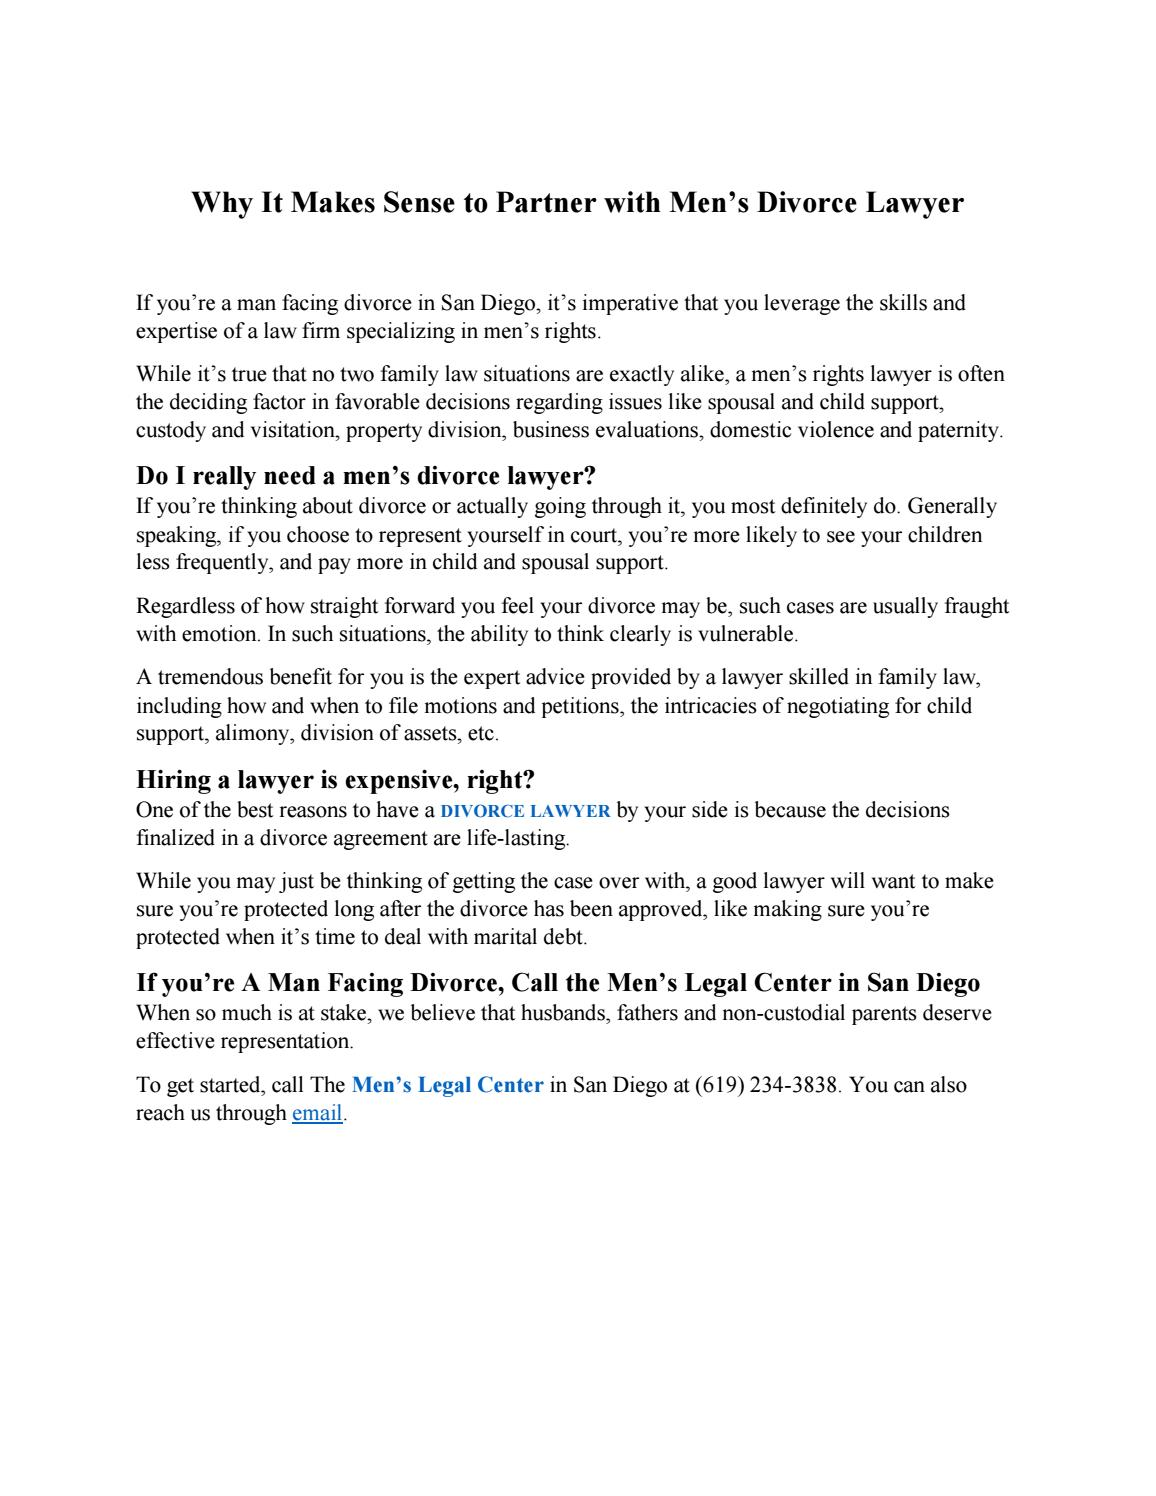 Why it makes sense to partner with mens divorce lawyer by alan why it makes sense to partner with mens divorce lawyer by alan thoms issuu solutioingenieria Gallery